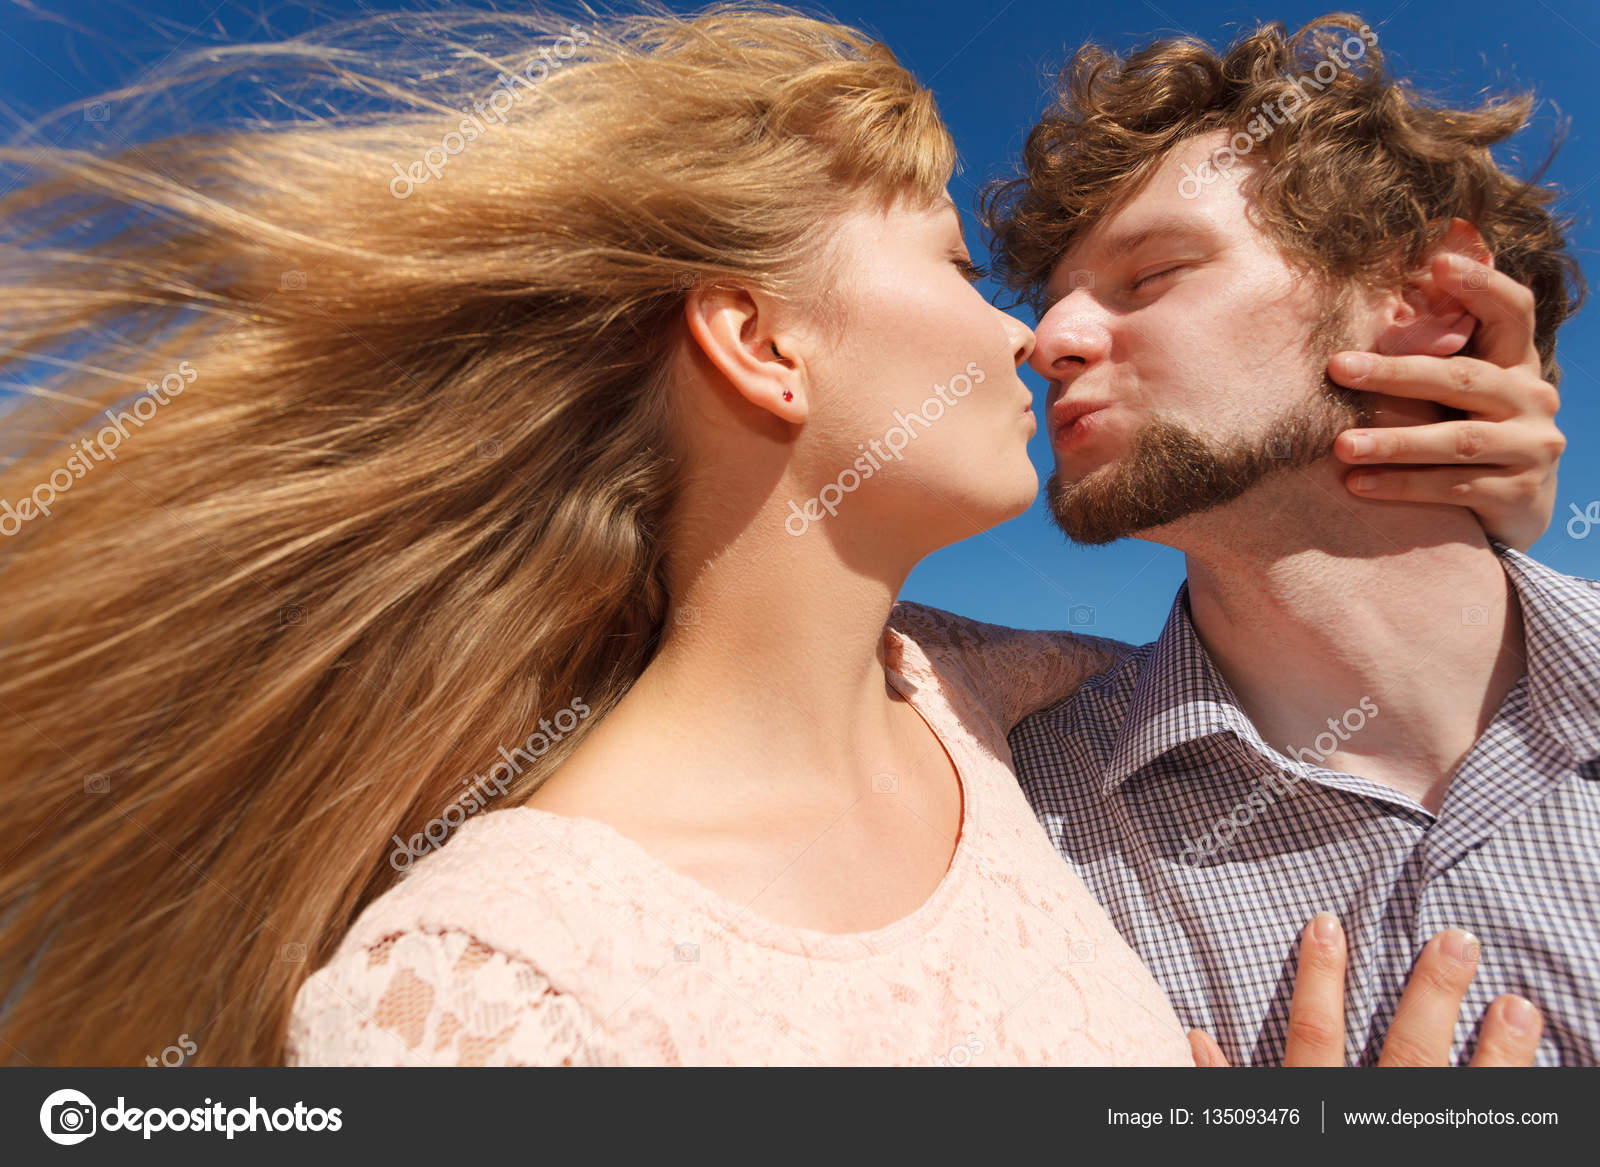 opinion you The best dating app in india consider, that you are